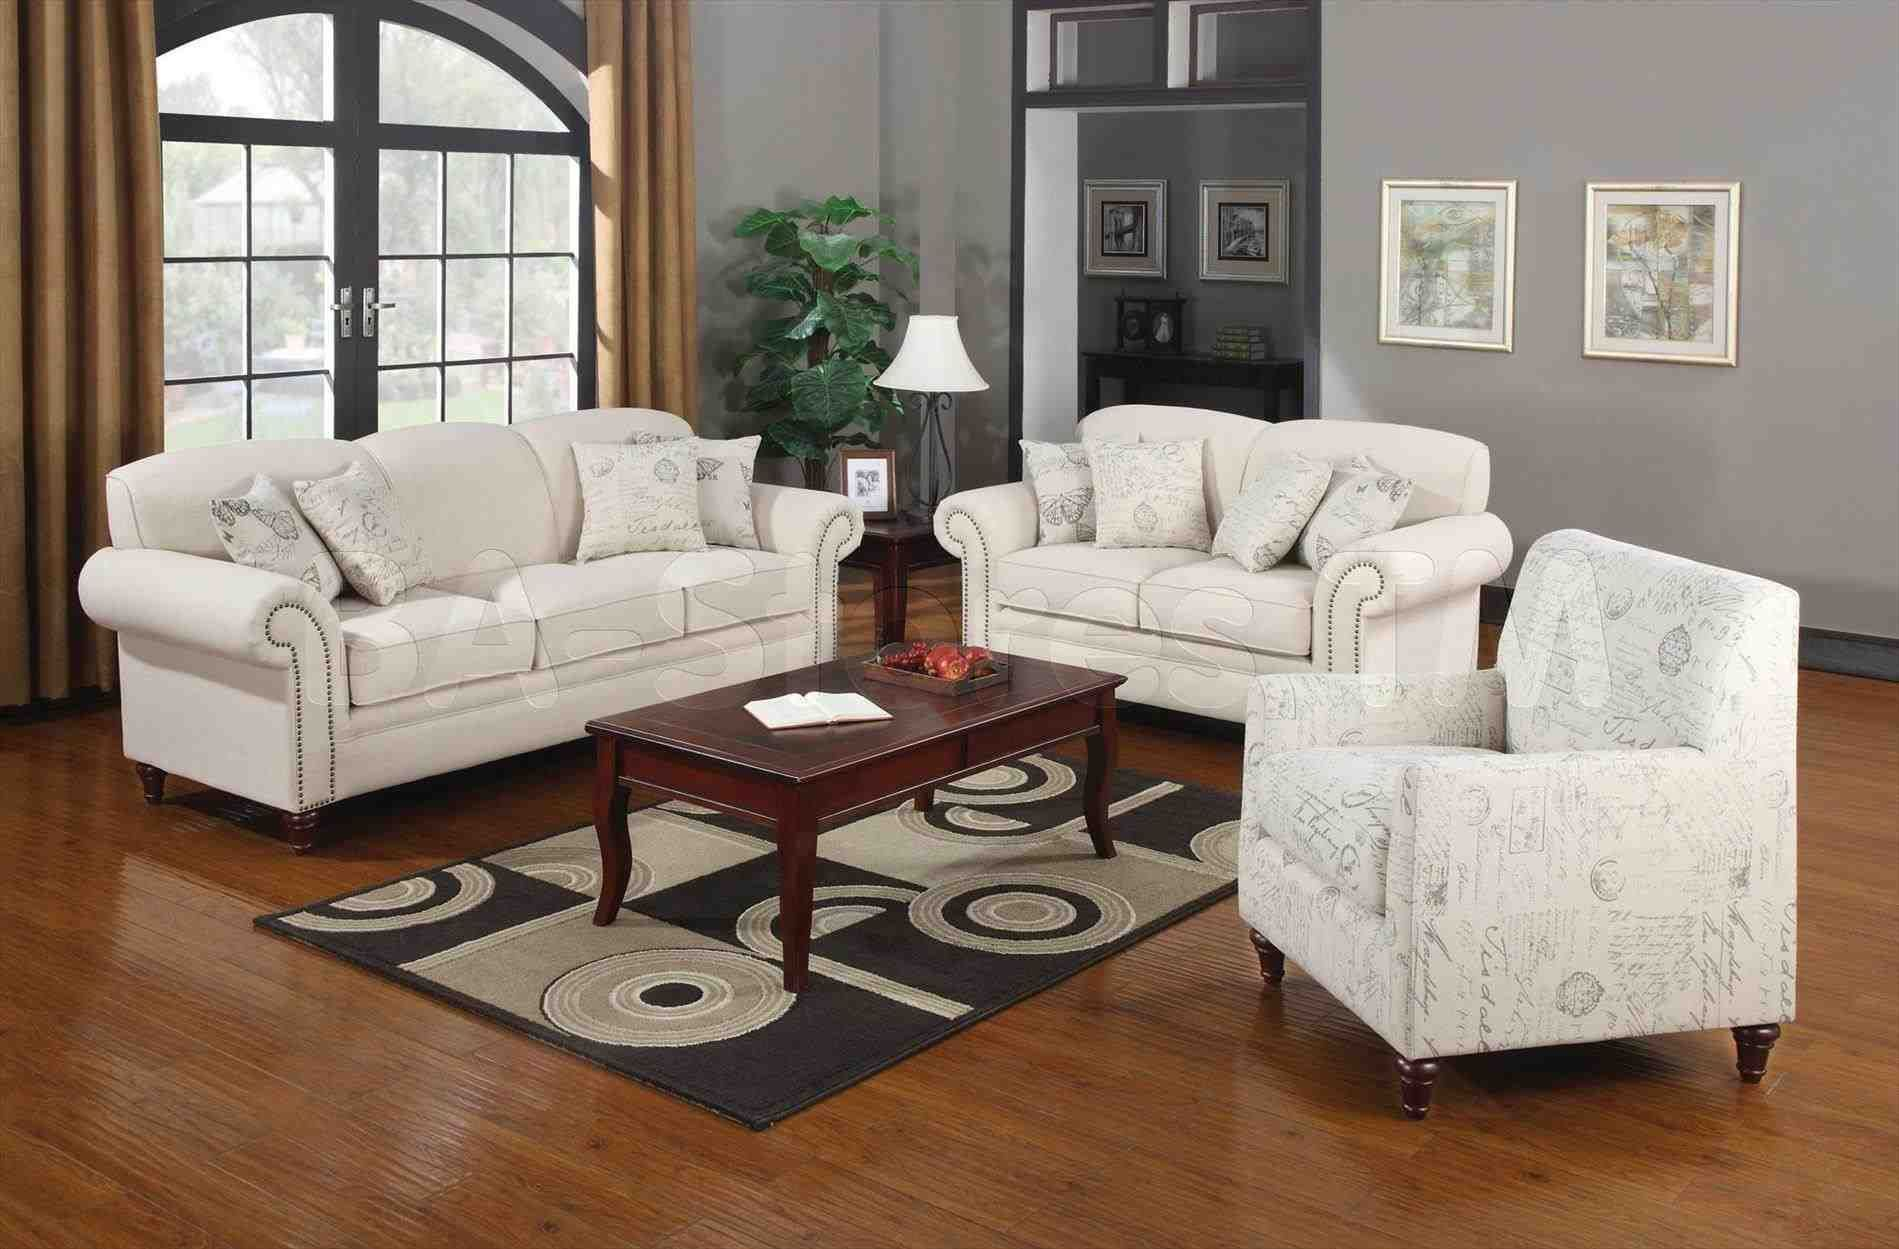 Cheap Living Room Furniture Sets For Sale Living Room Sofa Set